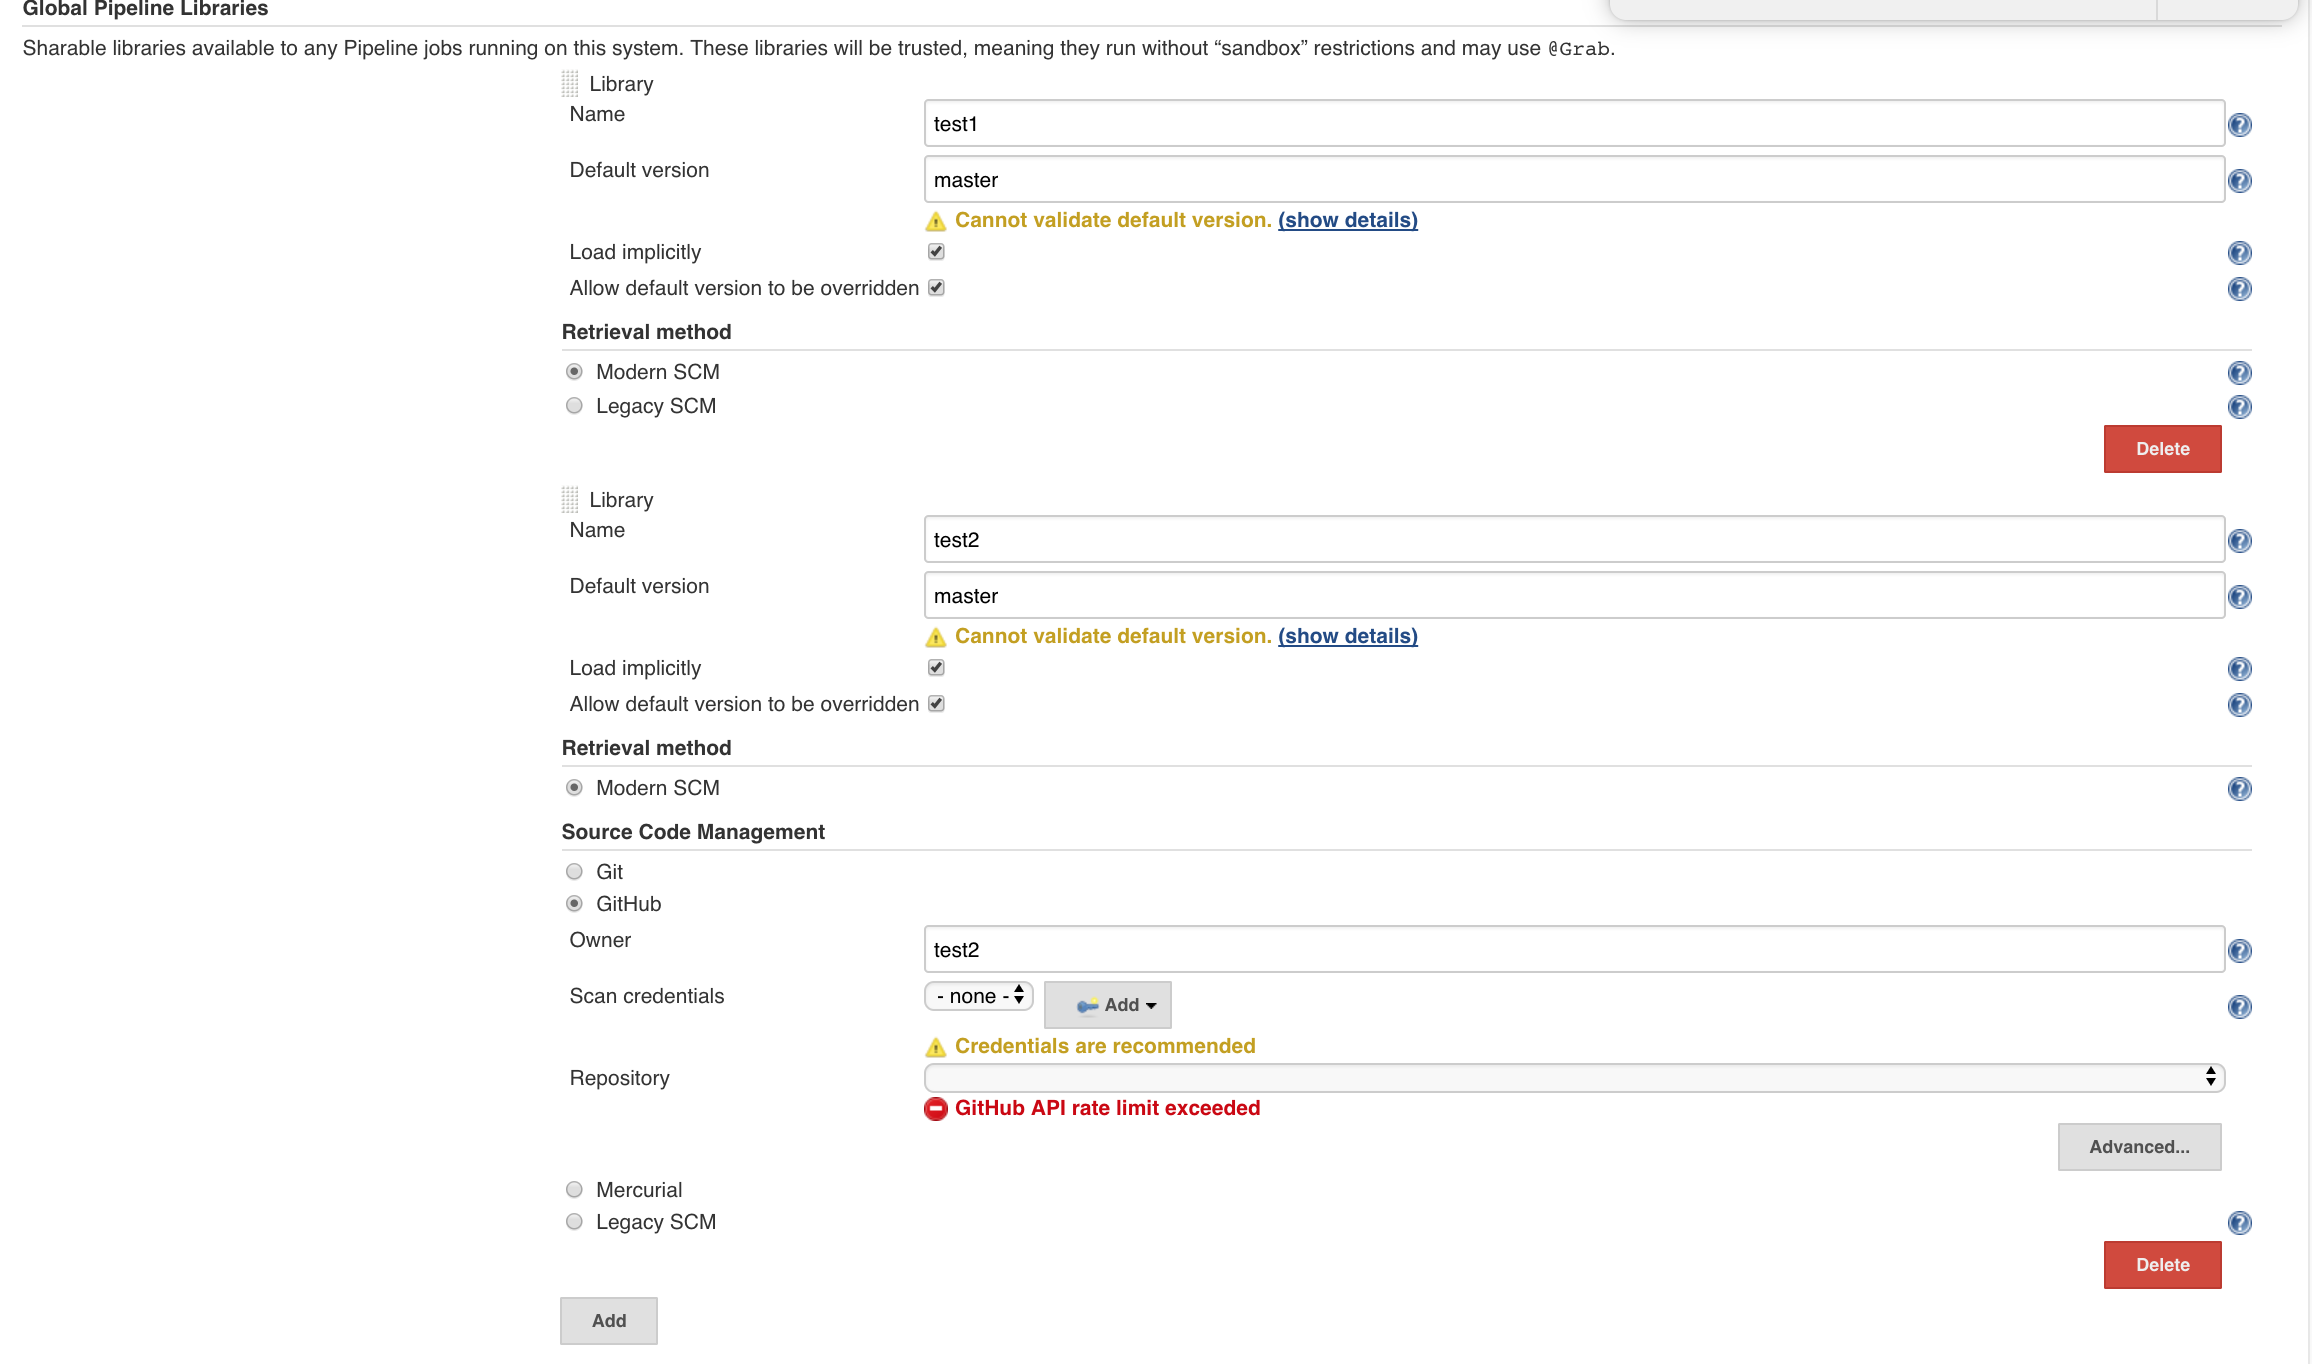 JENKINS-48516] When adding a new Global Pipeline Libraries the